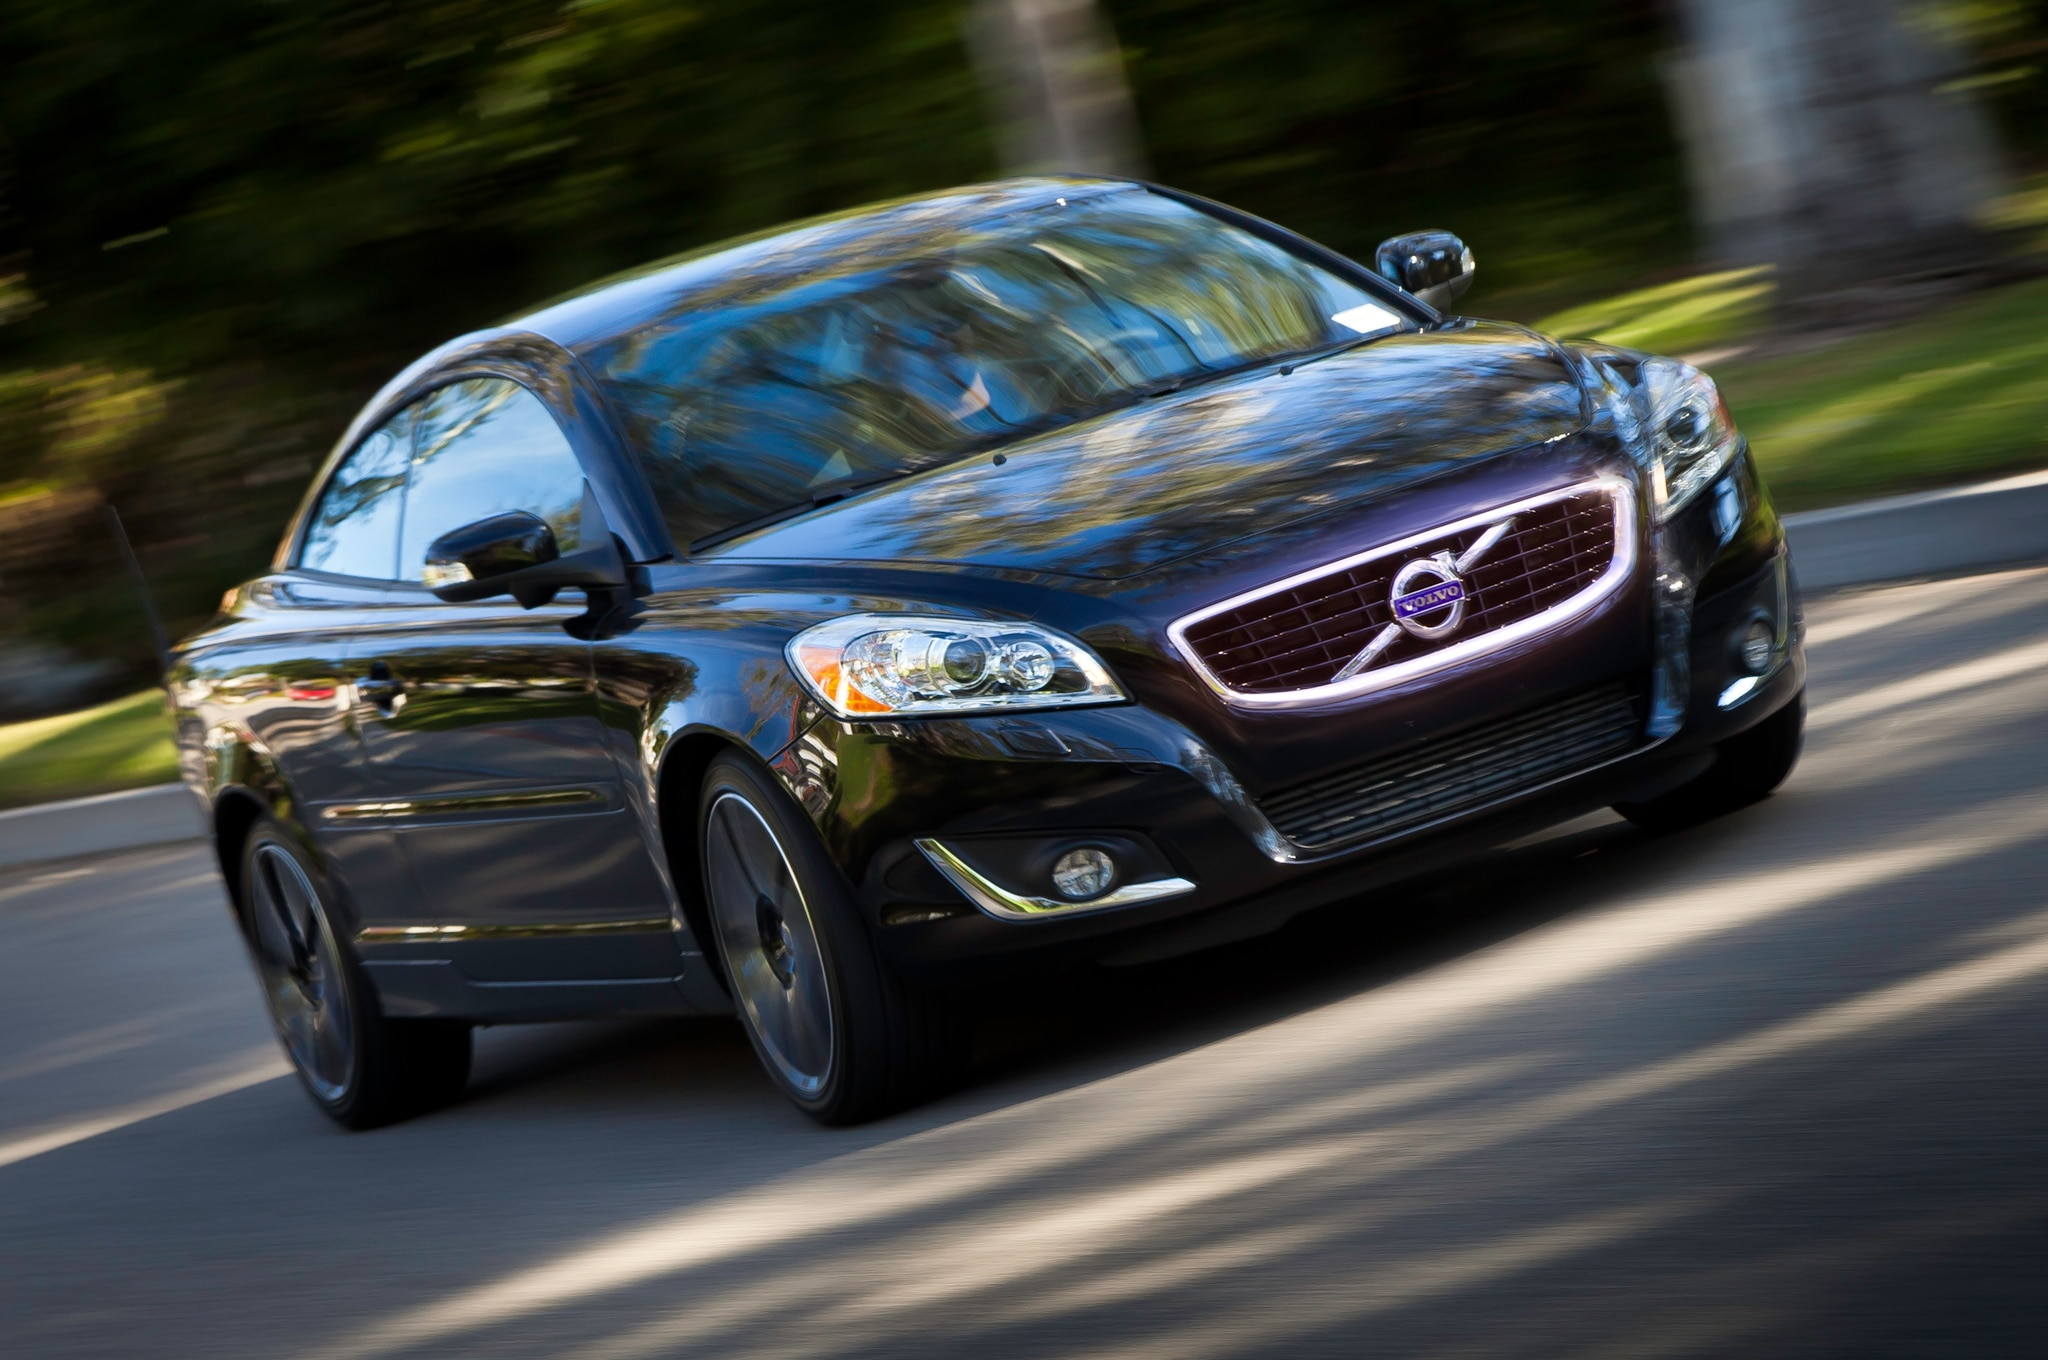 Volvo C70 Convertible >> Volvo C70 Discontinued for 2014, Replacement in the Works